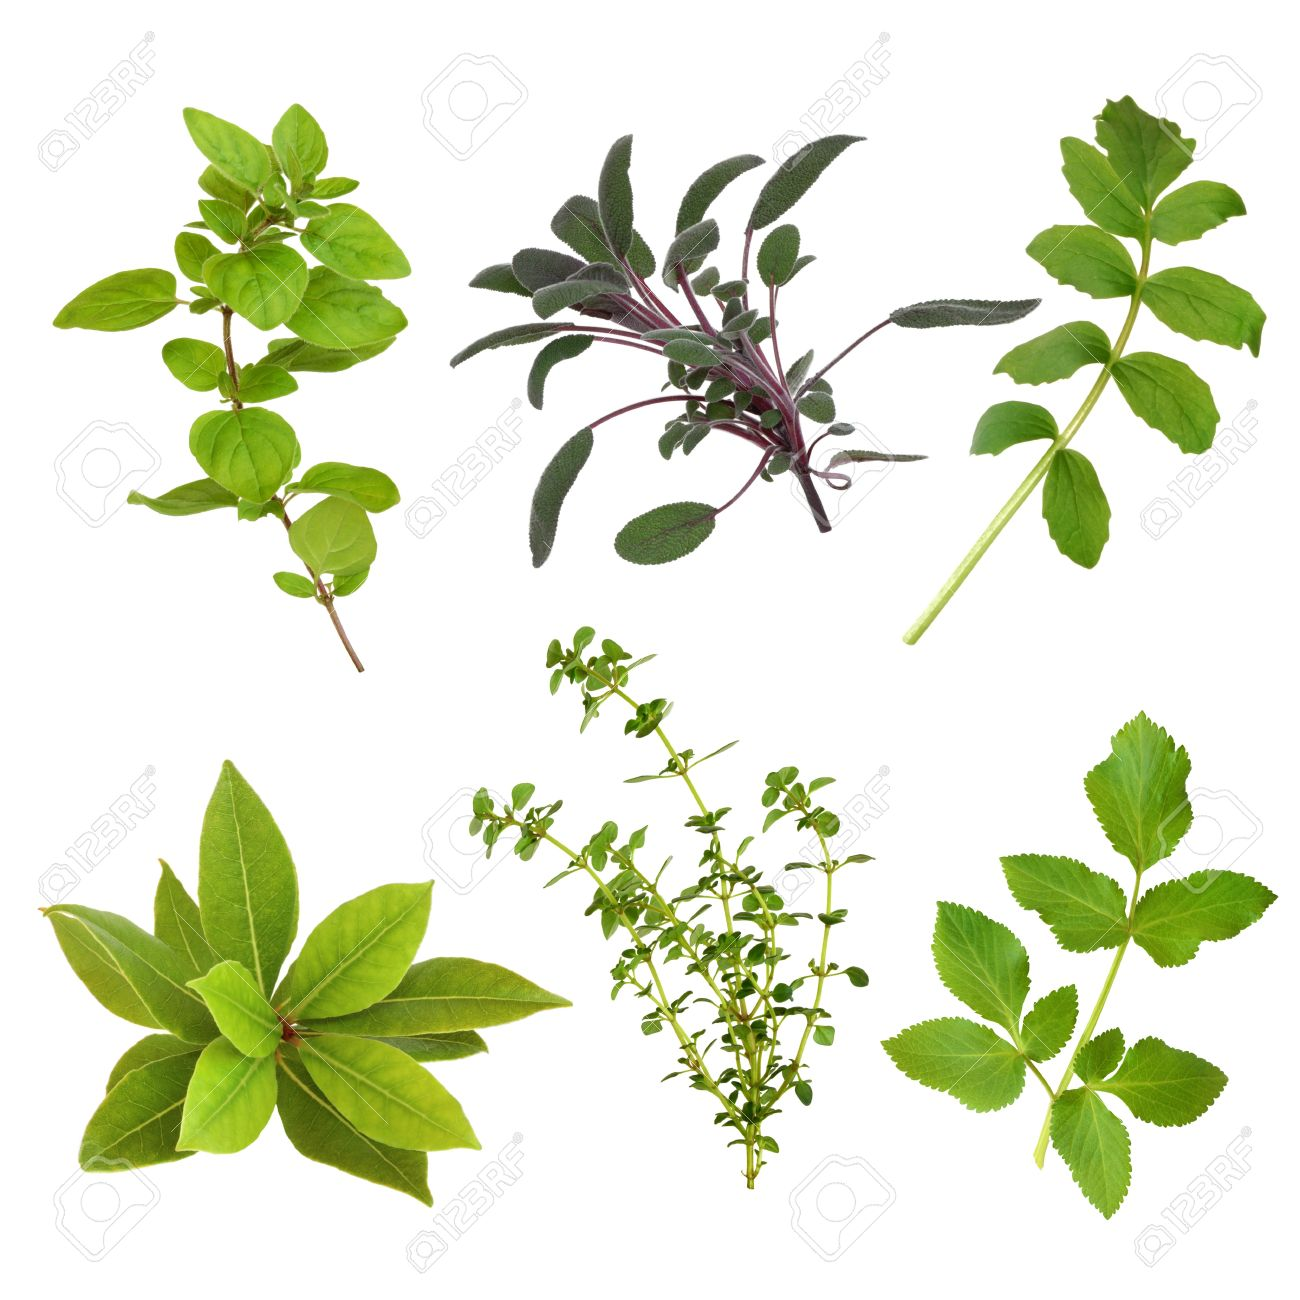 Herb Leaf Selection Of Oregano, Sage, Valerian, Bay, Thyme And.